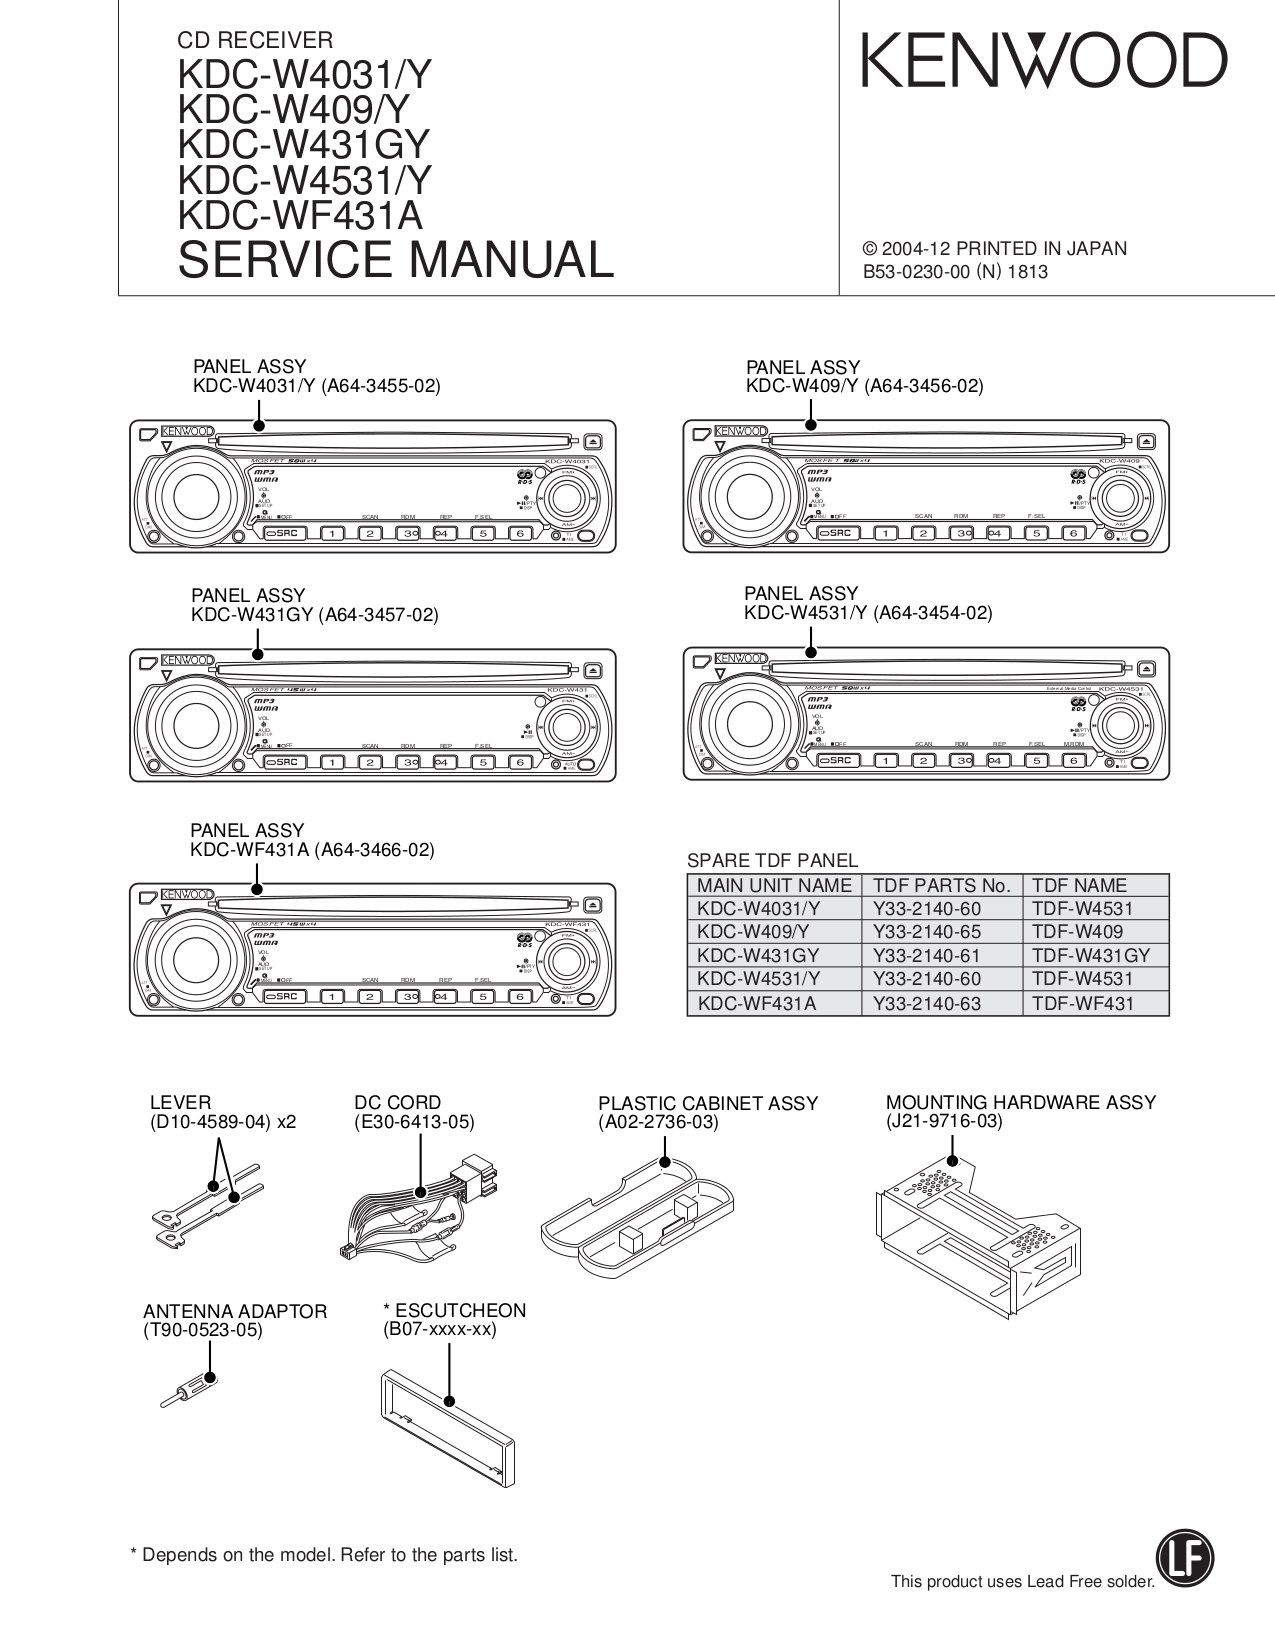 KDC W4031_W409_W431GY_W4531_WF431A.pdf 0 download free pdf for kenwood kdc 319 car receiver manual kenwood kdc-mp225 wiring diagram at bayanpartner.co